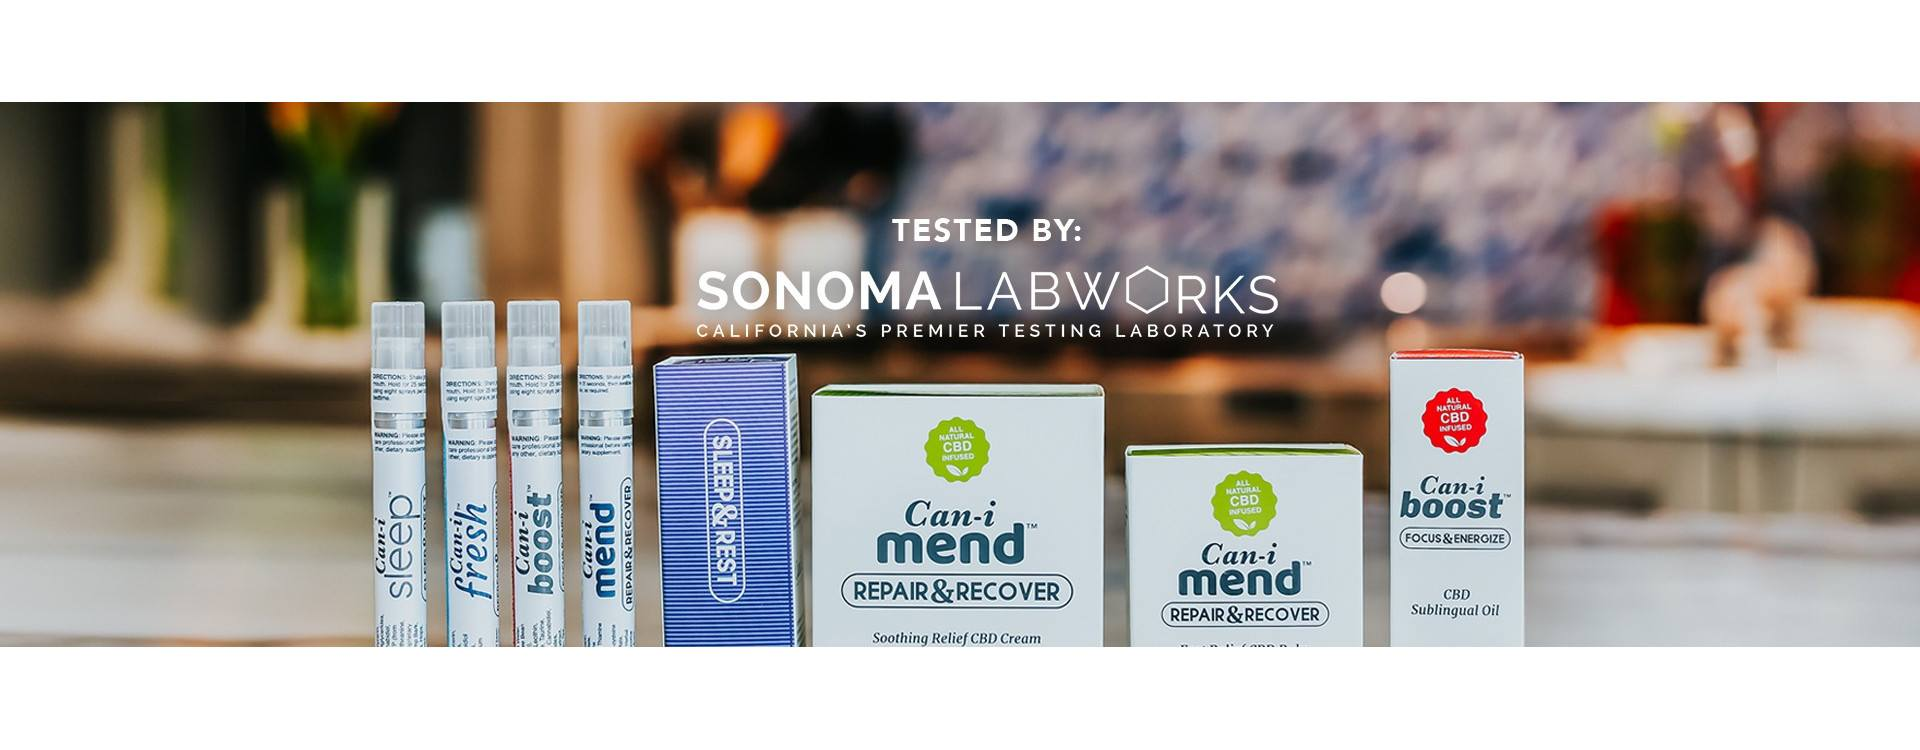 CaniBrands and Sonoma Lab Works Enter Strategic Partnership to Expand Testing and Development Capabilities for CBD-infused Products